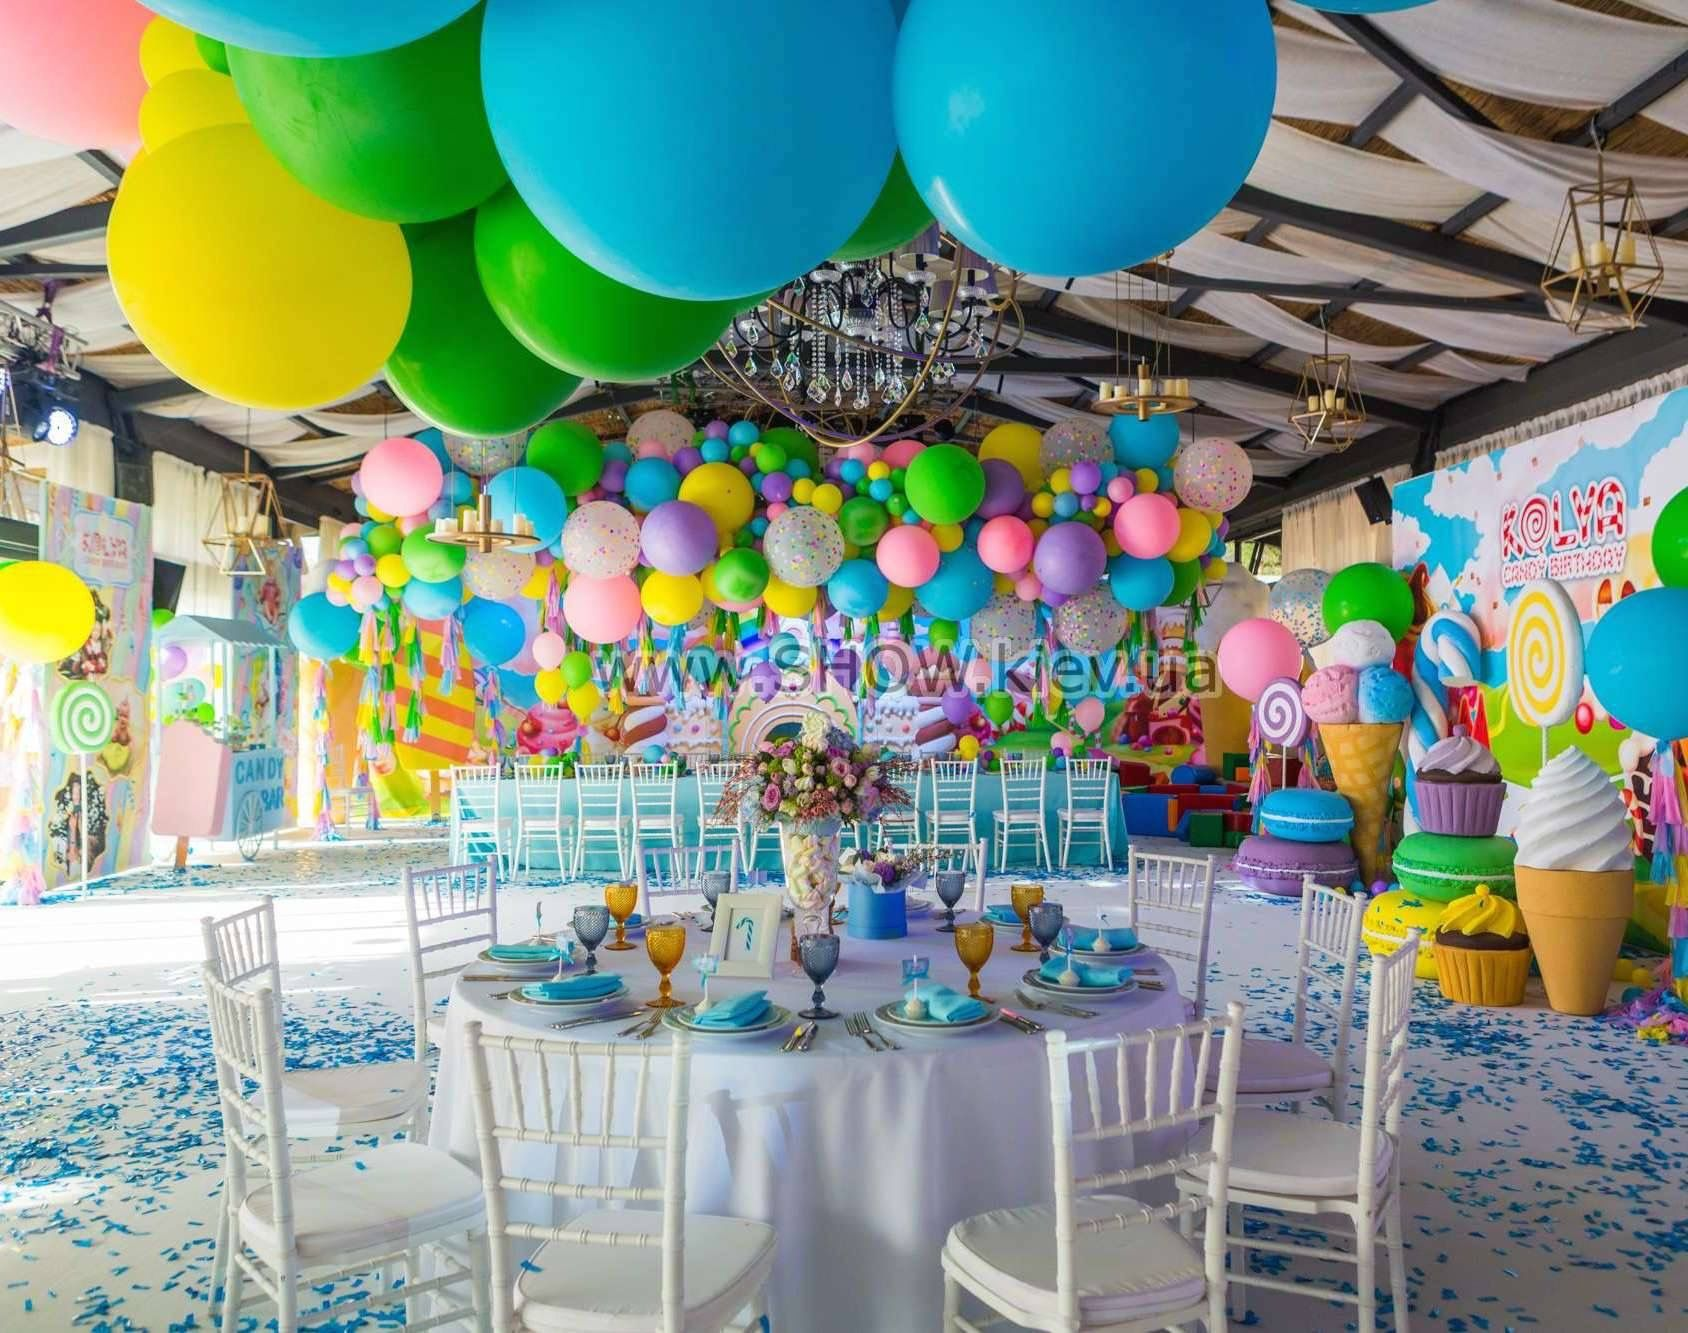 Balloon Ceiling Ceiling Decor Balloon Ideas School